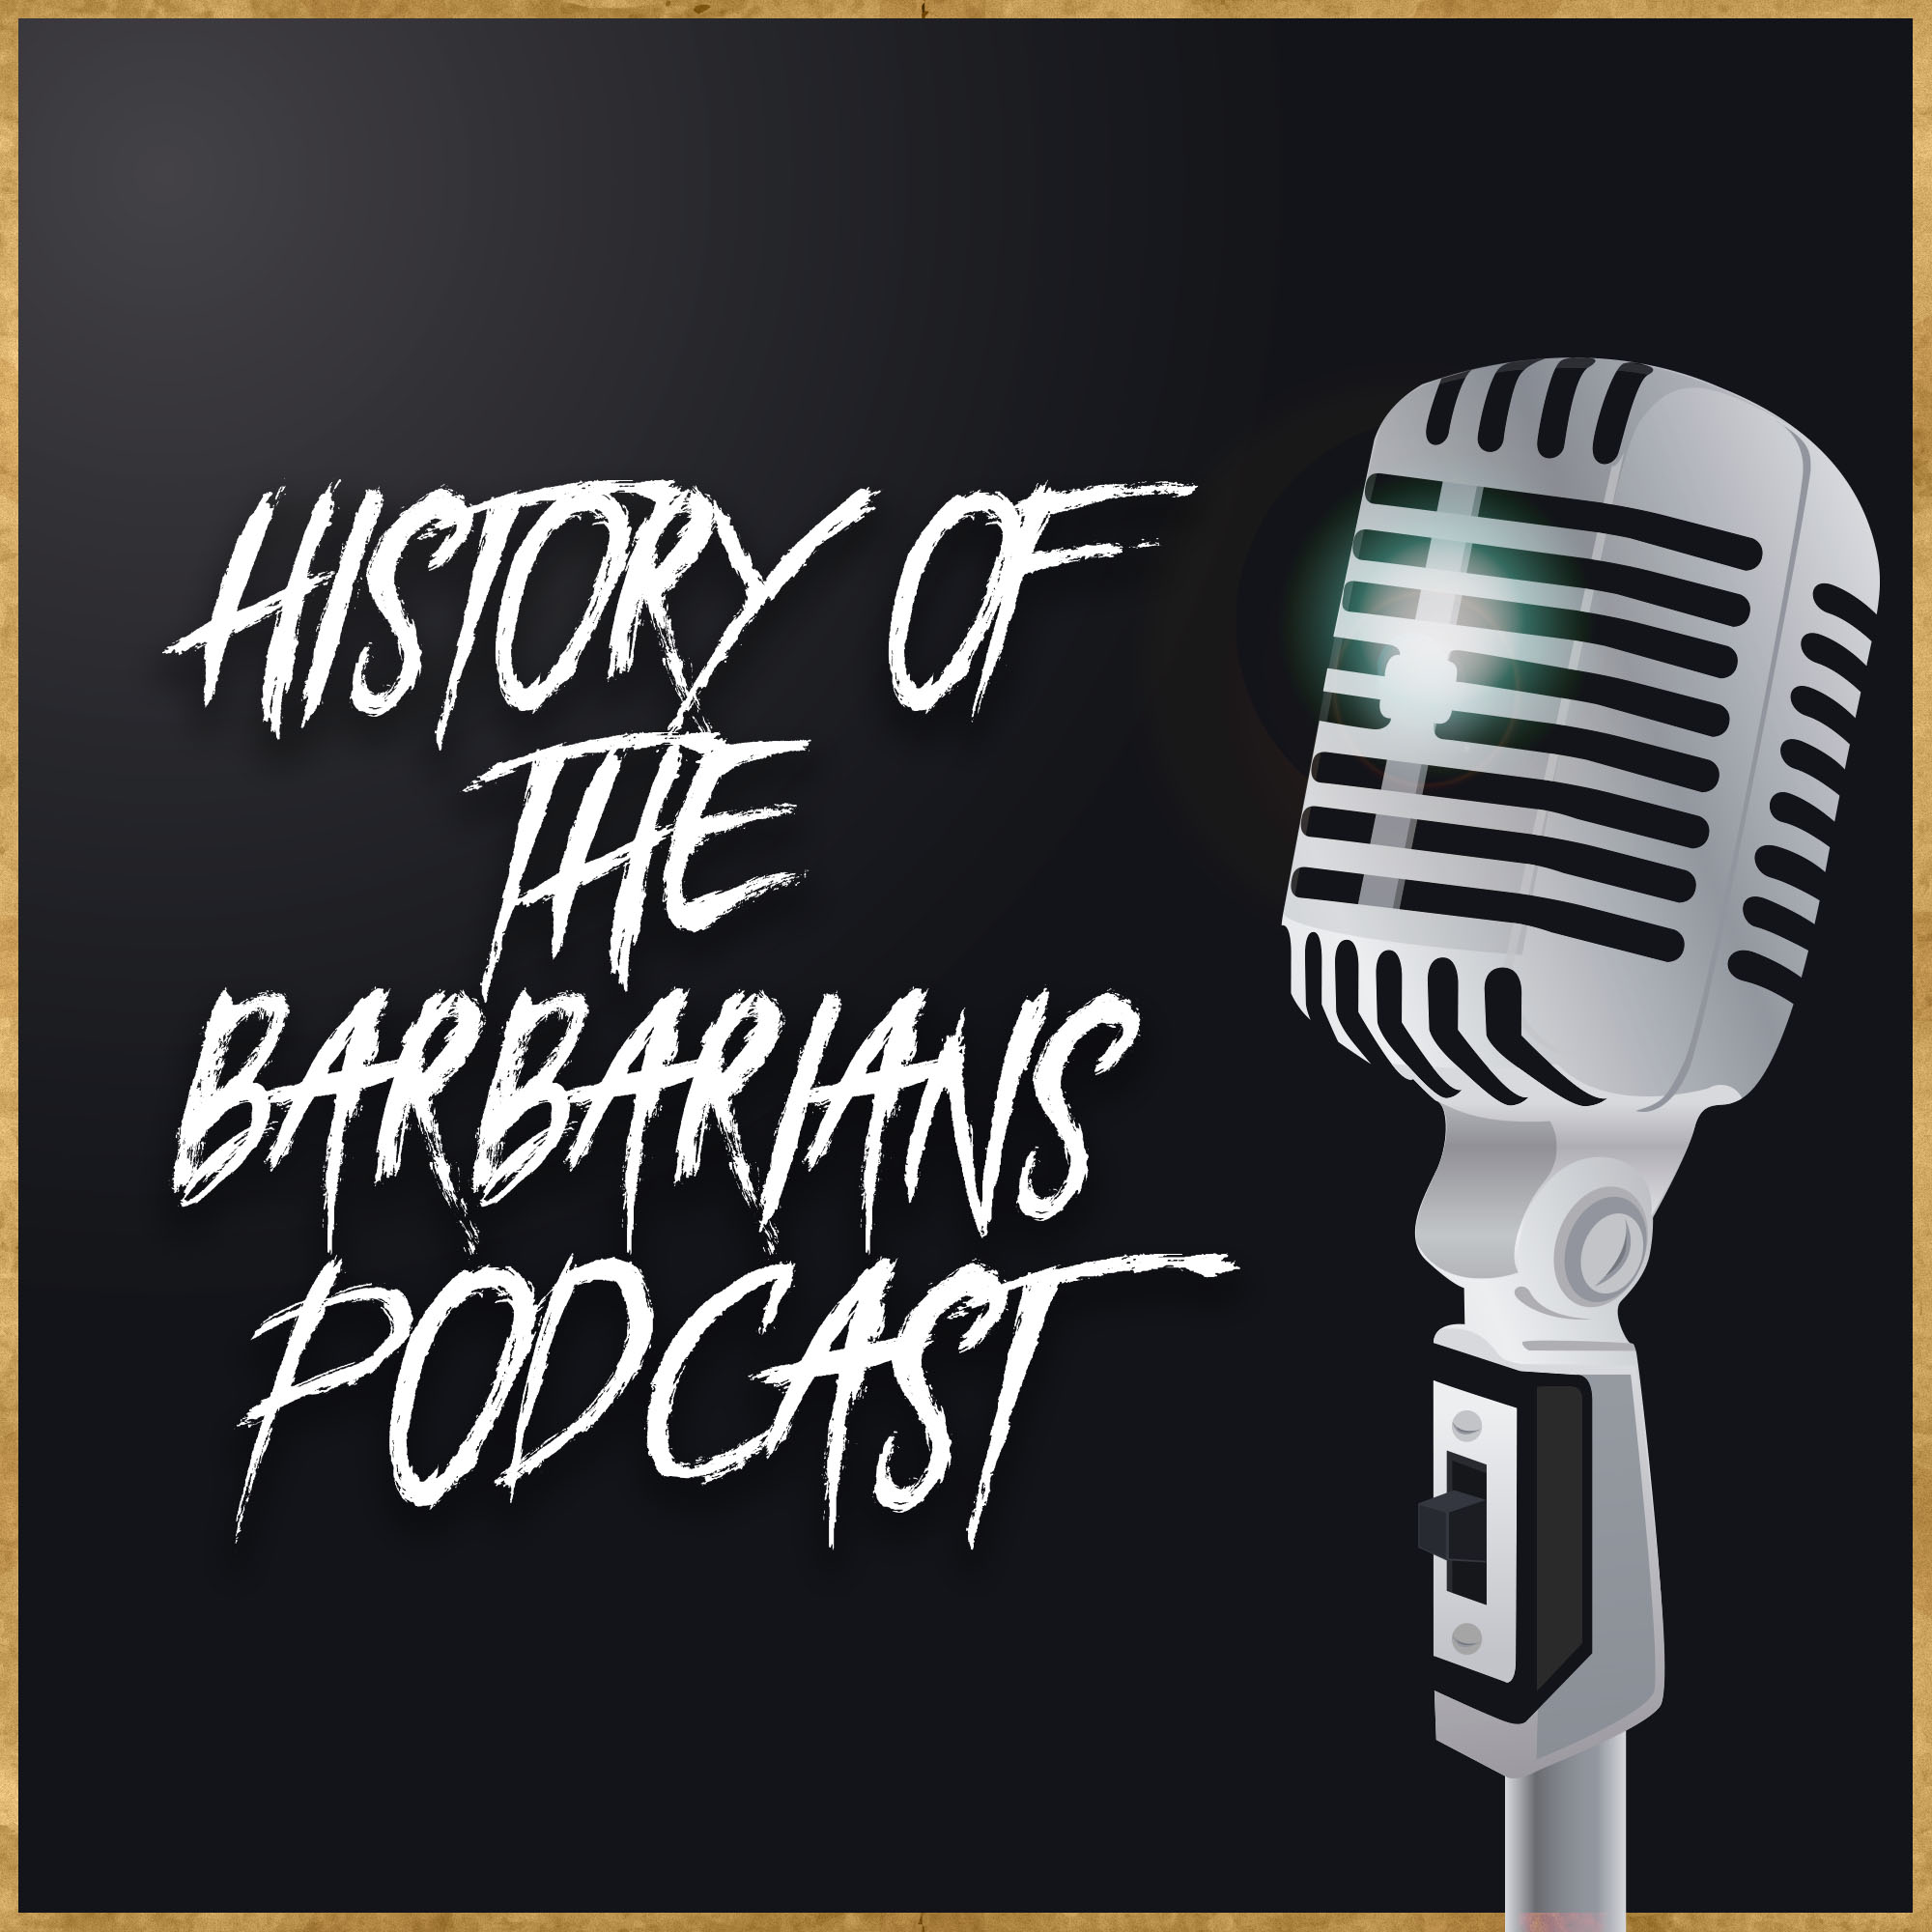 The History of the Barbarians's Podcast